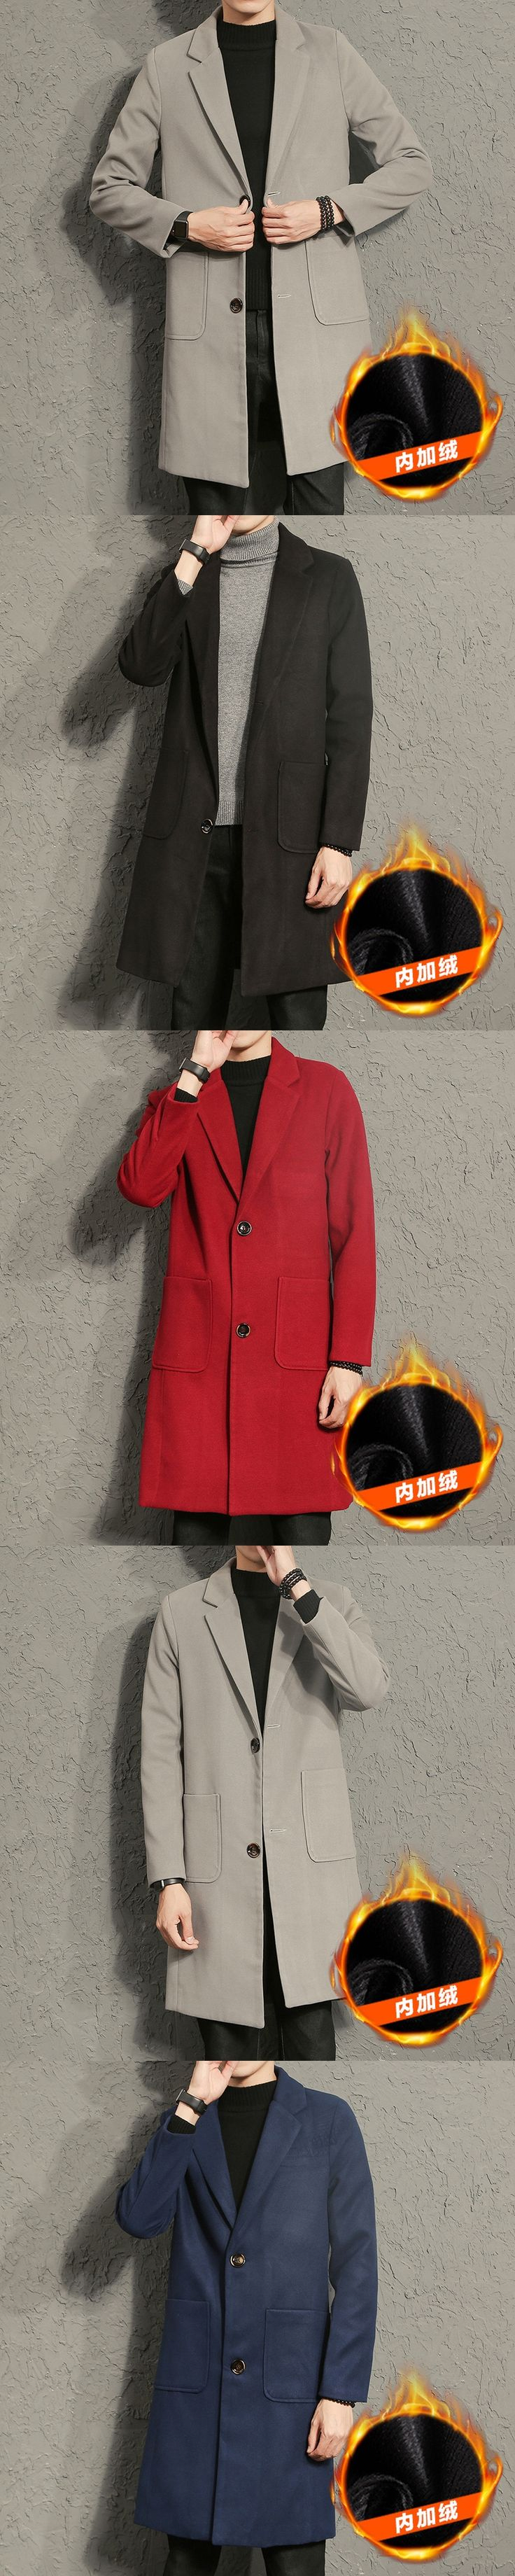 Long Beige Coat Man Cape English Mens Hooded Trench By Winter Hot Men Raincoat Trenches Male Slim Jacket Jersey Especially f18+